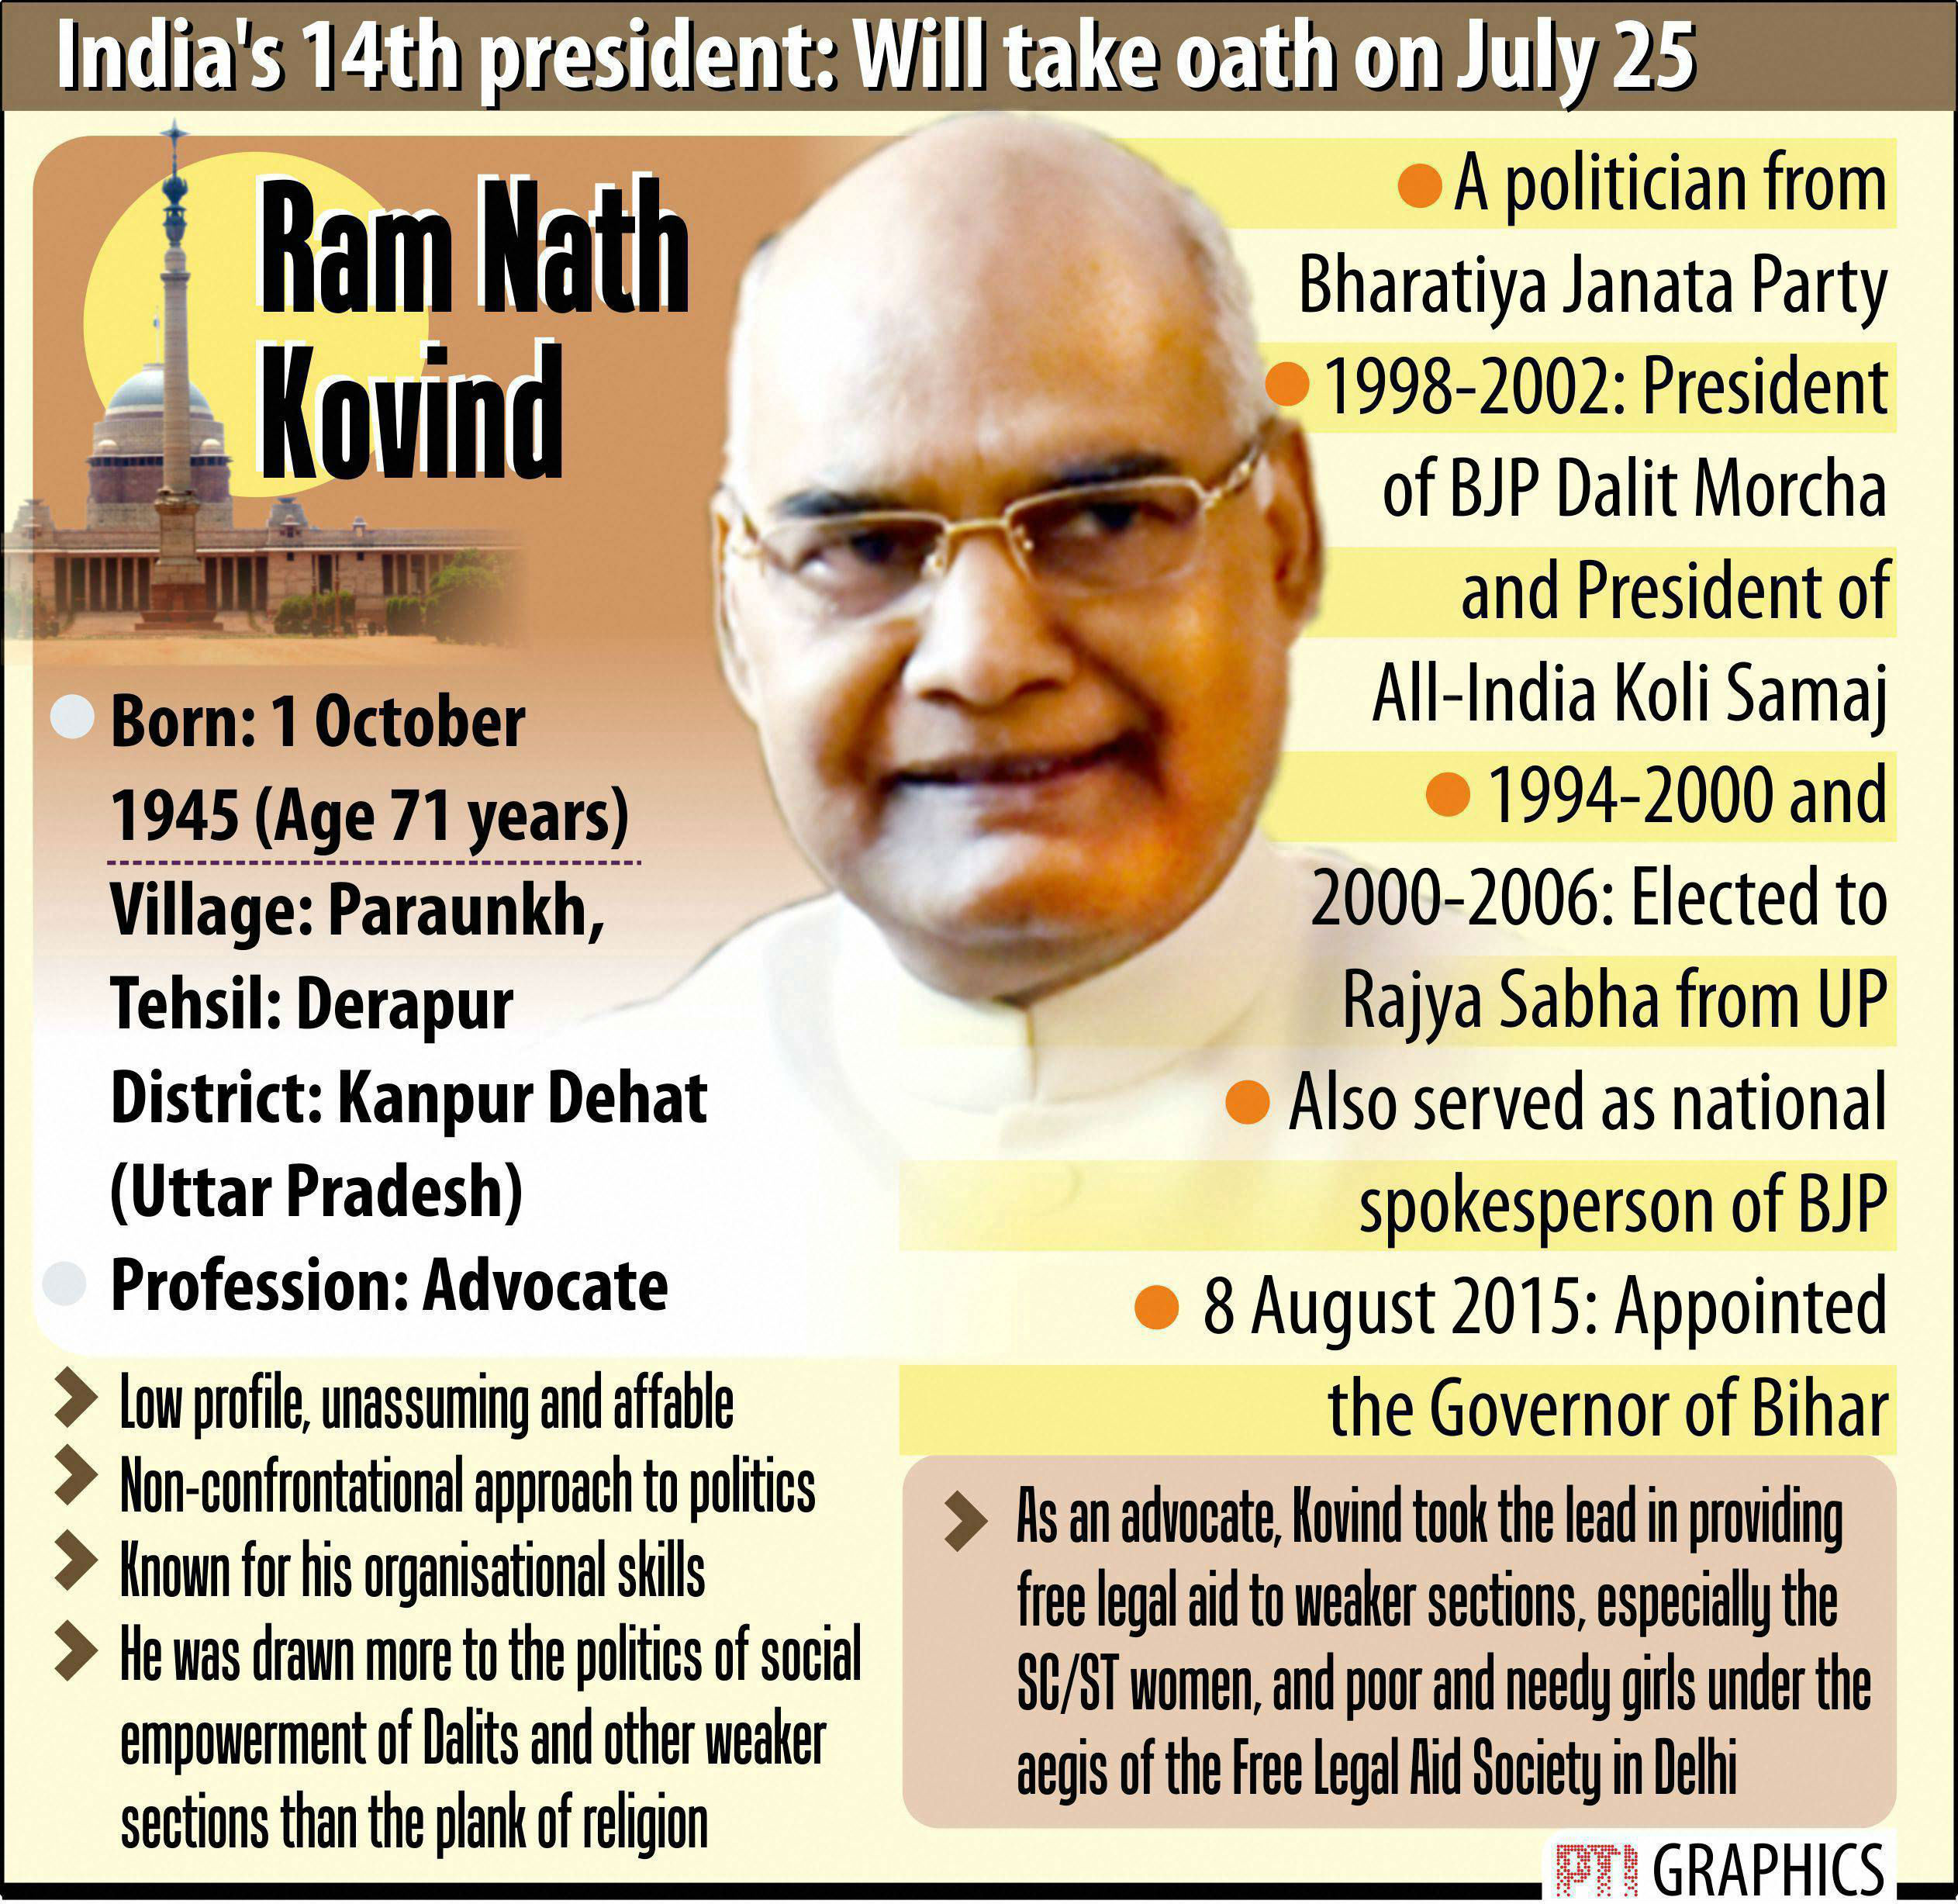 ram-nath-kovind-1-image-for-inuth